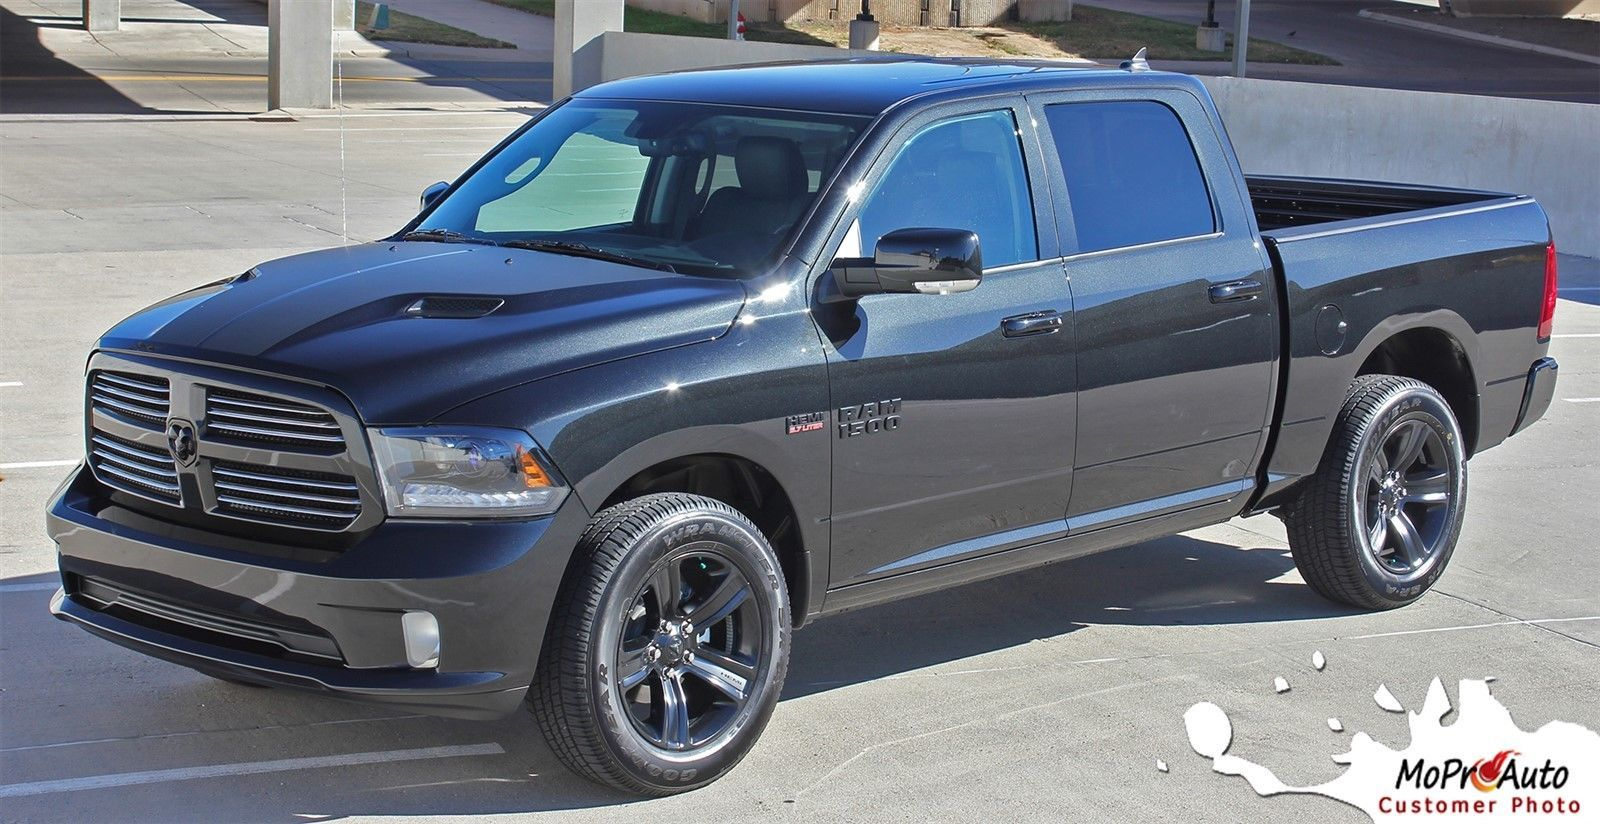 2012 dodge ram factory style hemi hood 3m pro vinyl graphics decals stripes d05 graphics decals. Black Bedroom Furniture Sets. Home Design Ideas